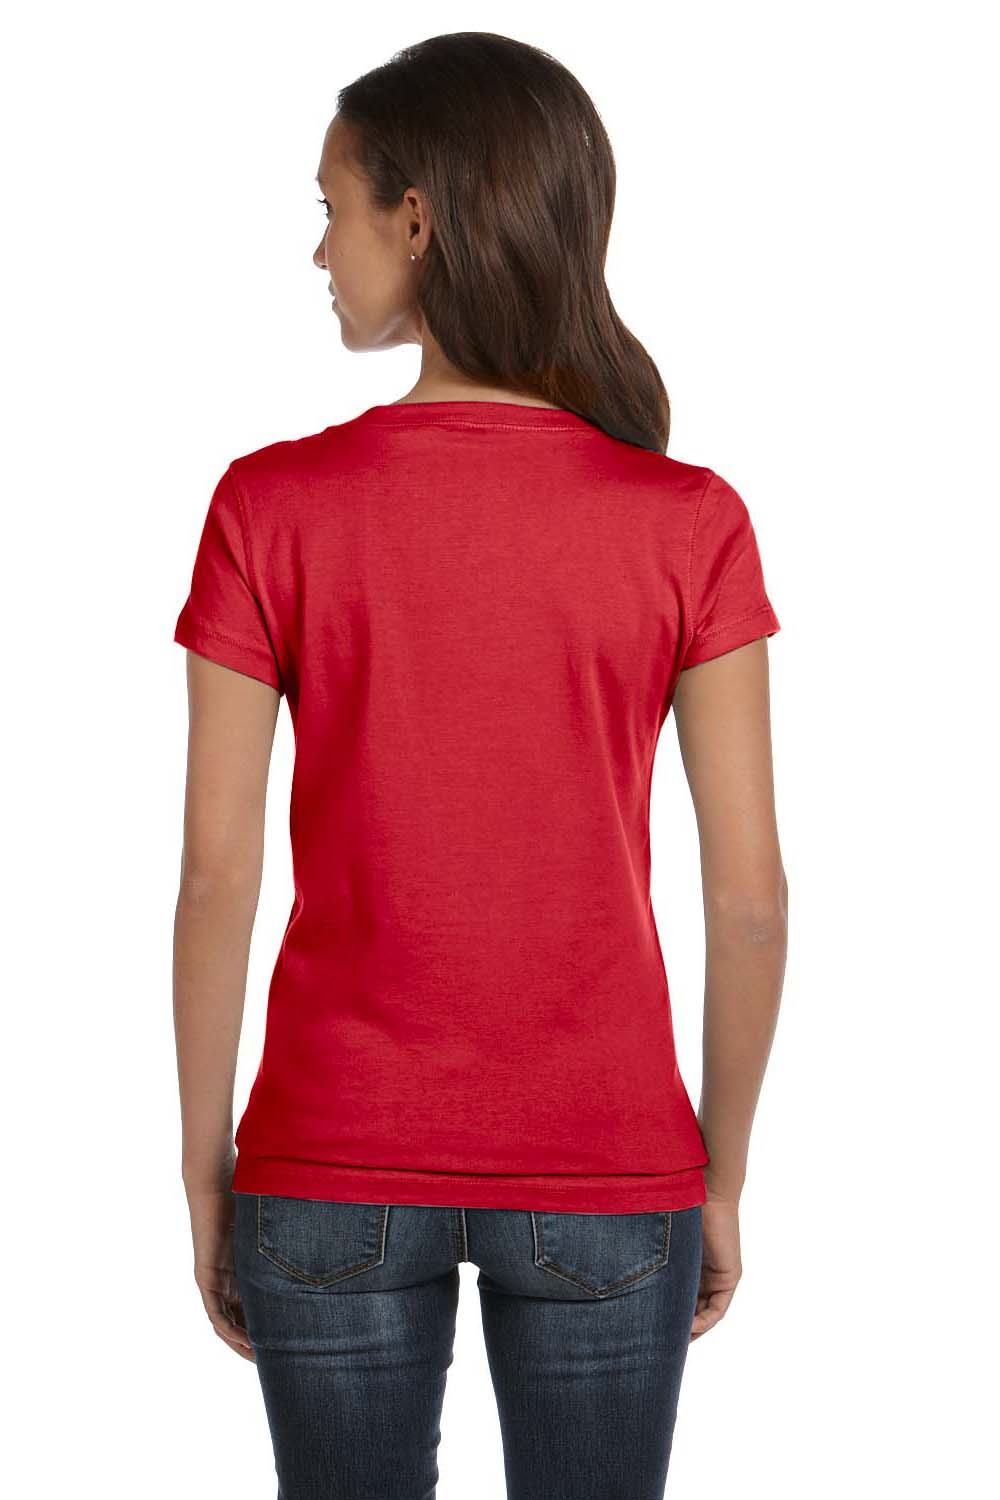 Bella + Canvas B6005 Womens Jersey Short Sleeve V-Neck T-Shirt Red Back